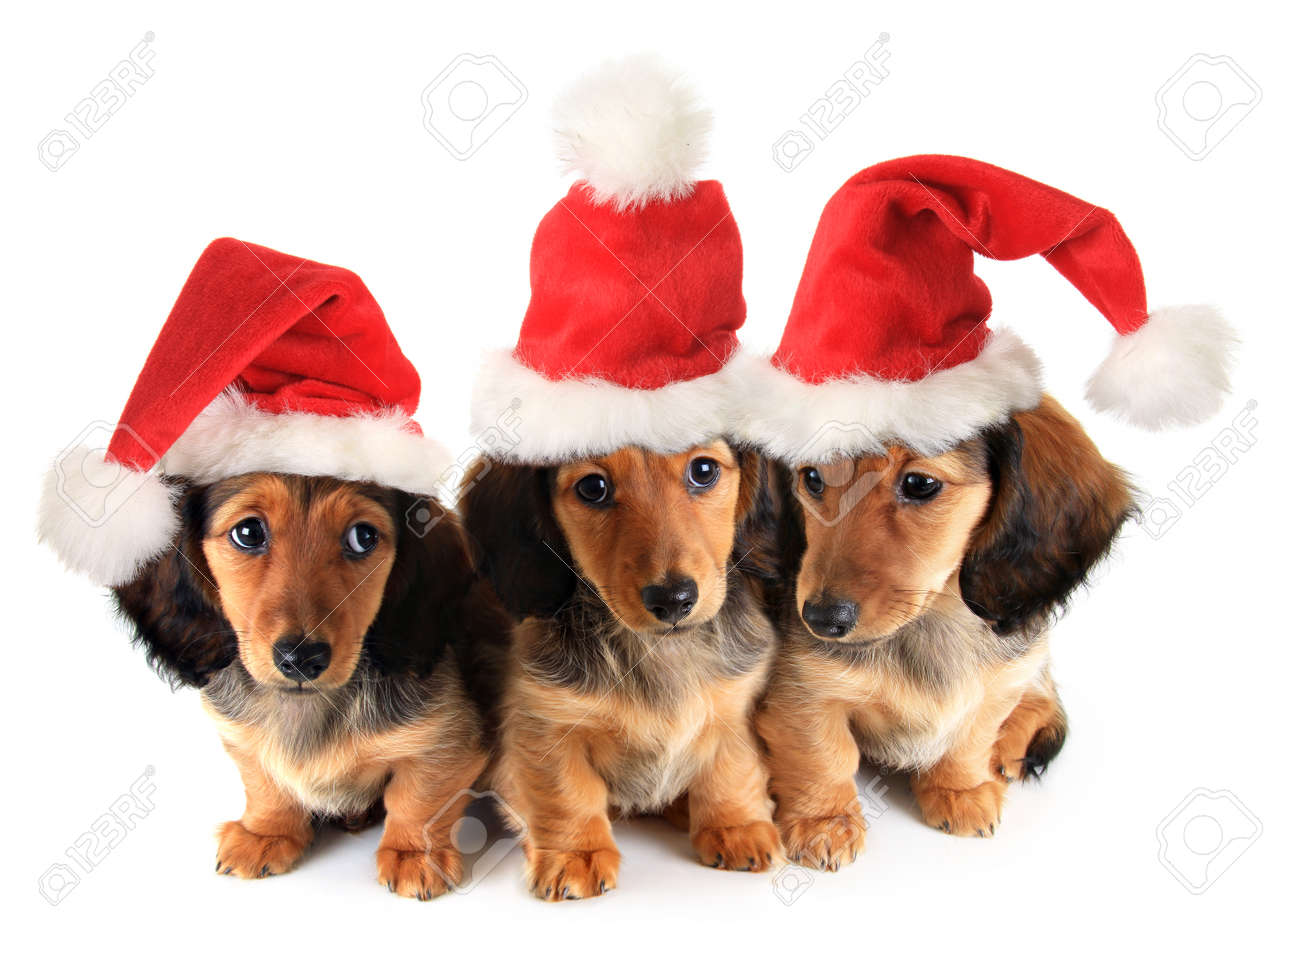 Christmas Dachshund Puppies Wearing Santa Hats. Stock Photo, Picture And Royalty Free Image. Image 31427401.